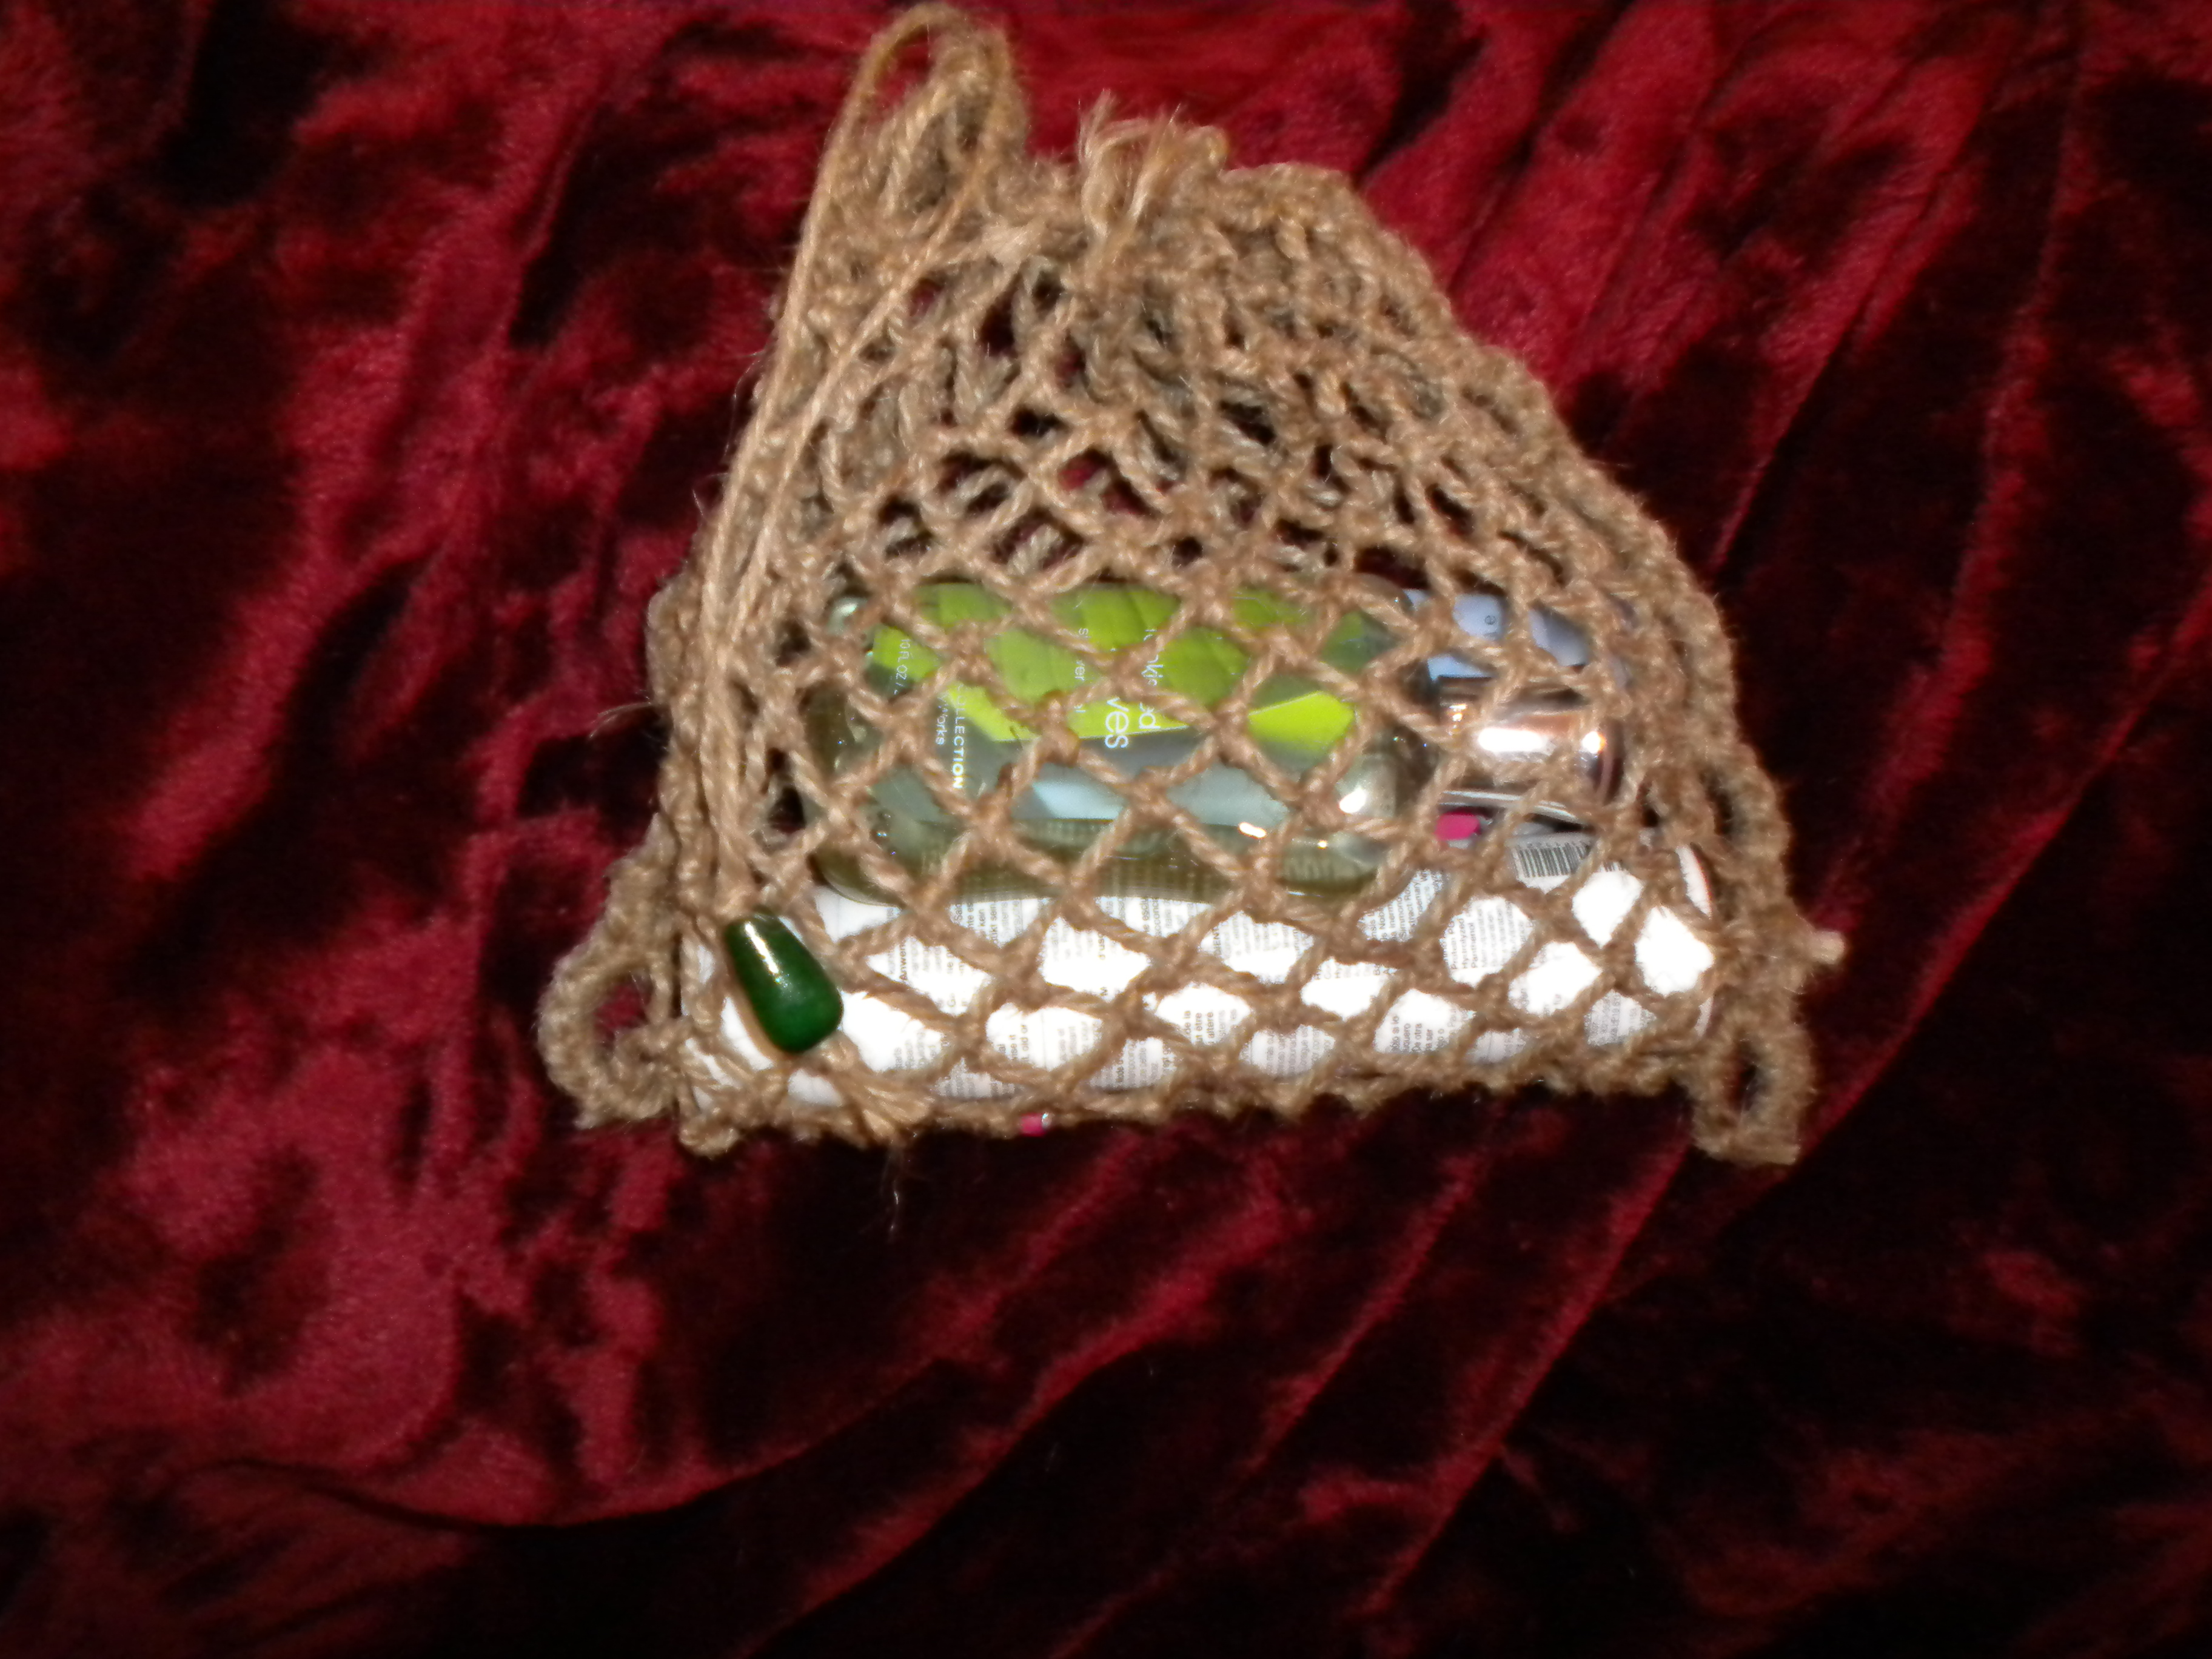 Make Your Own Net Bag!: 6 Steps (with Pictures)